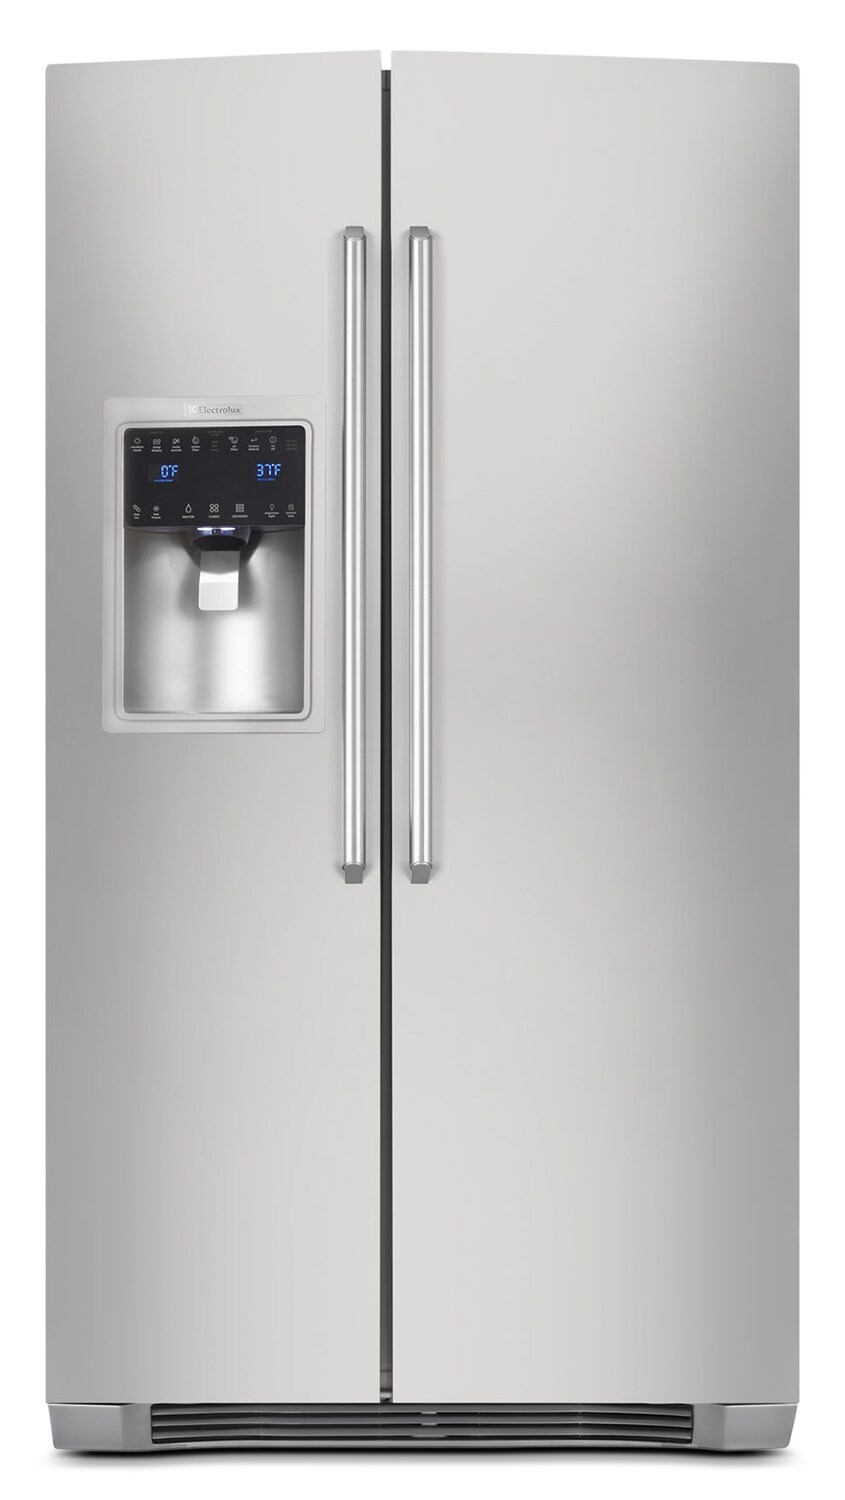 Refrigerators and Freezers - Electrolux Stainless Steel Counter-Depth Side-by-Side Refrigerator (22.67 Cu. Ft.) - EI23CS35KS